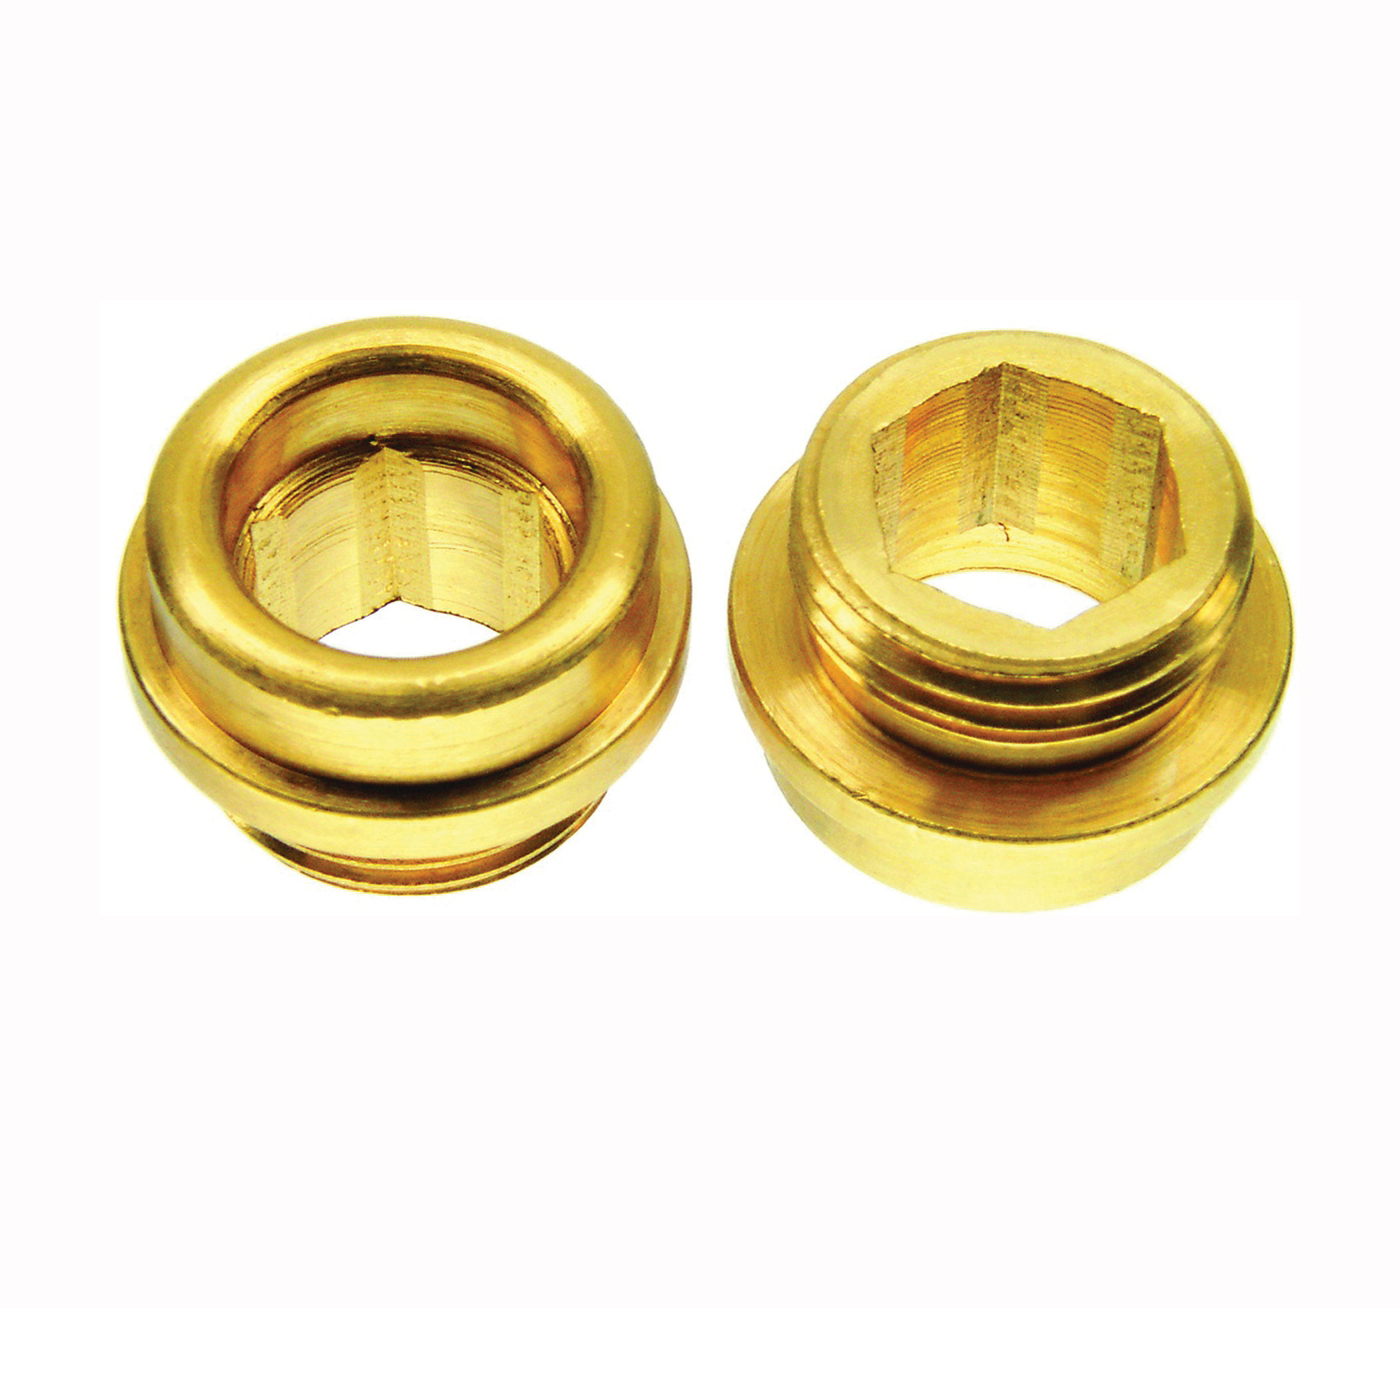 Picture of Danco 30006E Faucet Bibb Seat, Brass, For: Central and Rheum Faucet